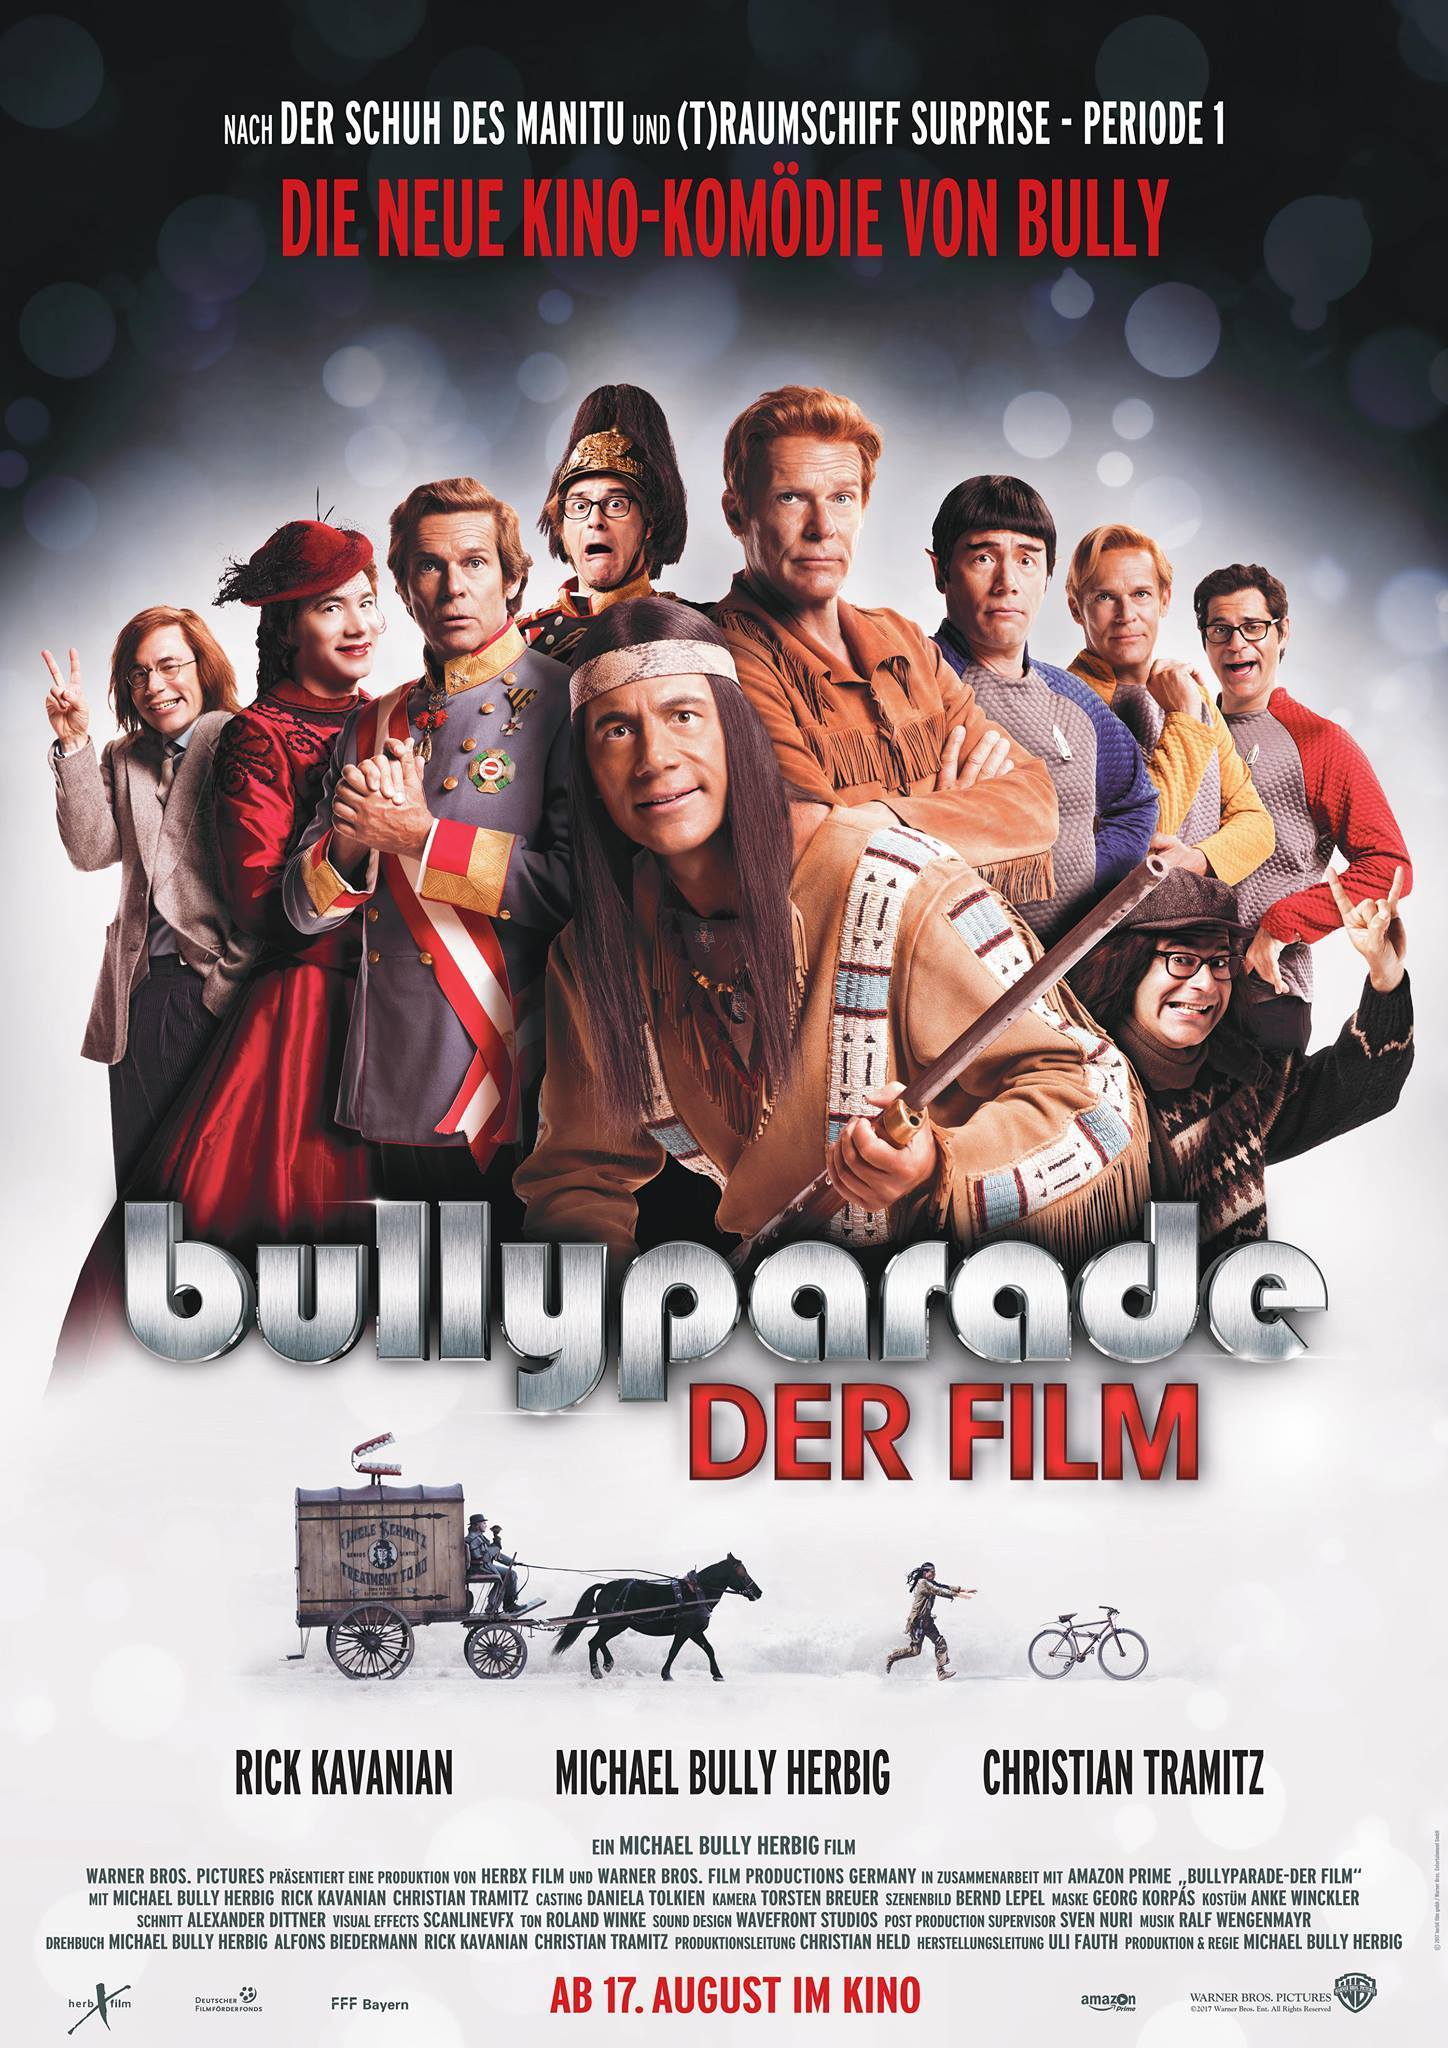 Bullyparade - Der Film Movie Poster - ID: 152880 - Image Abyss